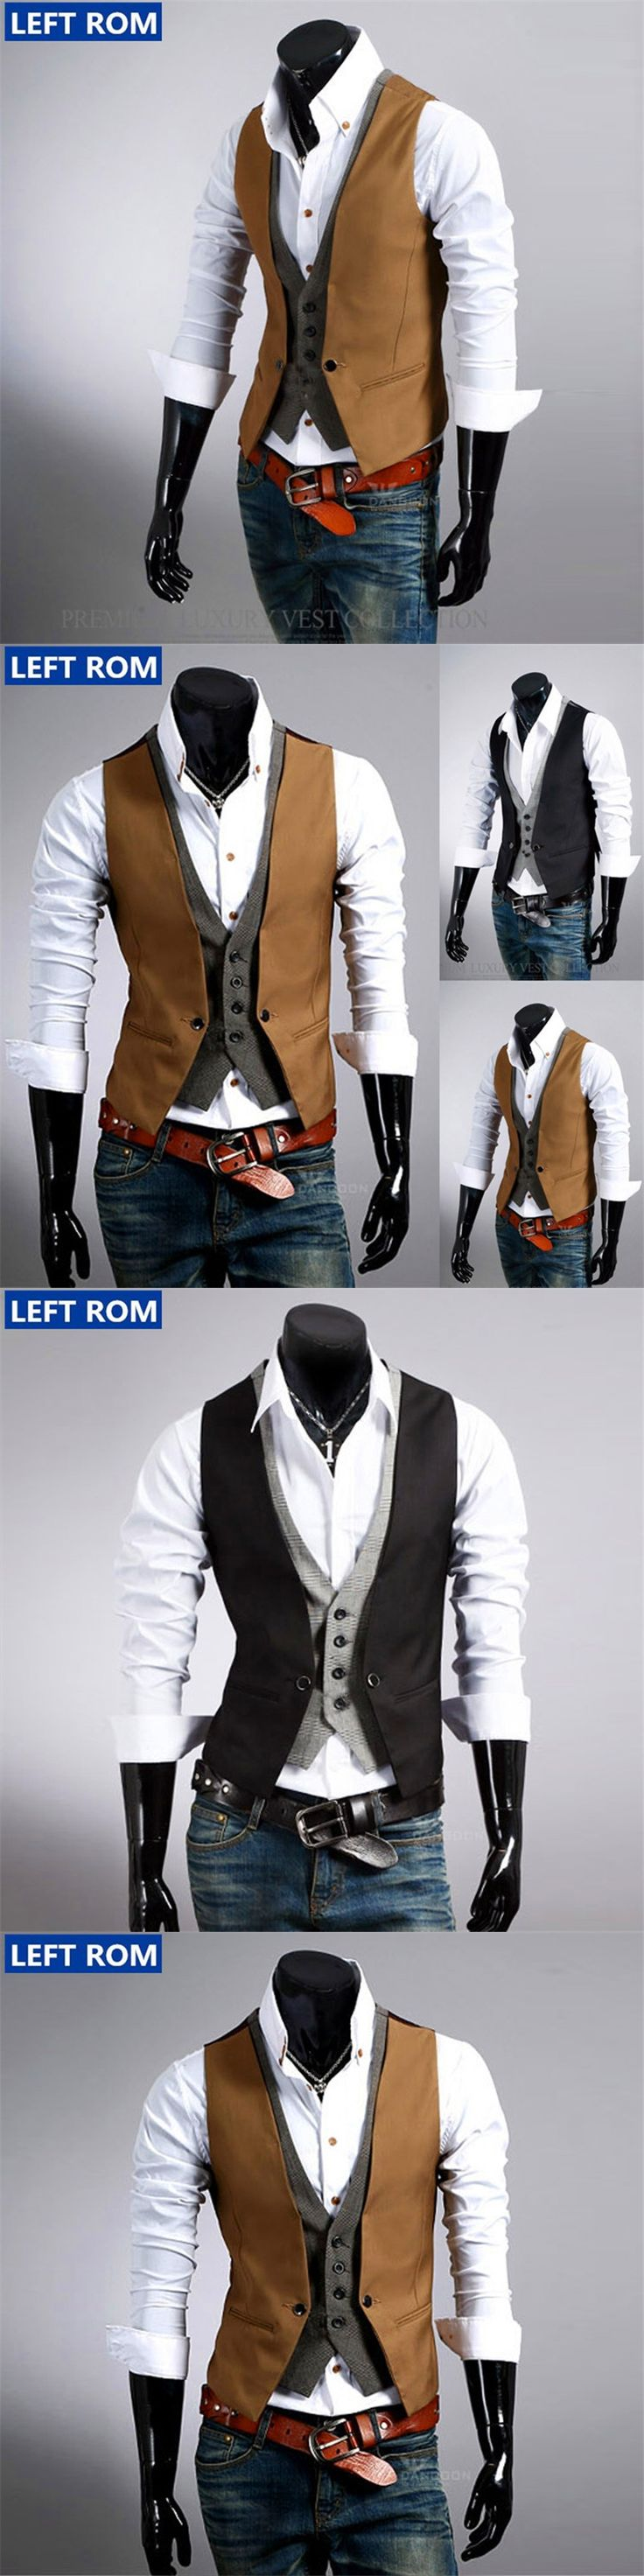 mens suits Vest 2017 new male Top boys popular selling fashion business casual wear men Waistcoat clothing Hot sale Size S-2XL